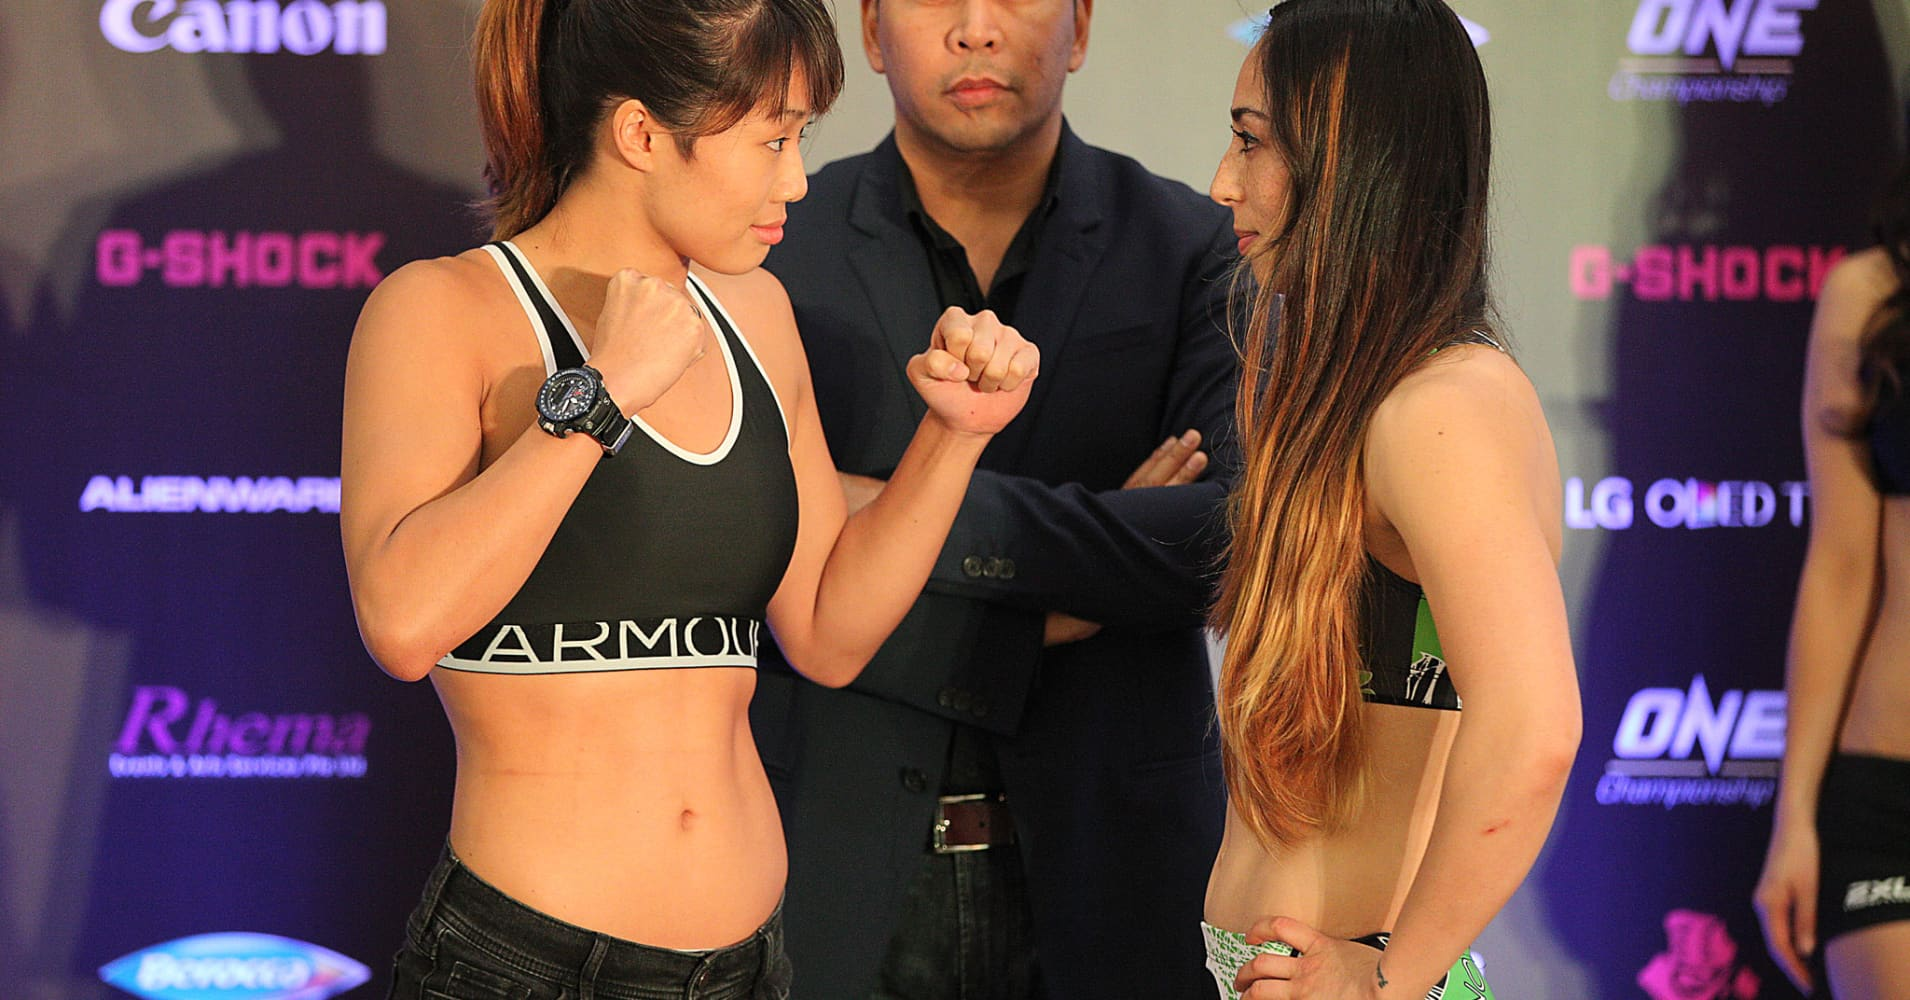 Angela Lee and Natalie Gonzales Hills during their weigh in, ahead of their bout at the ONE: Pride of Lions fighting event